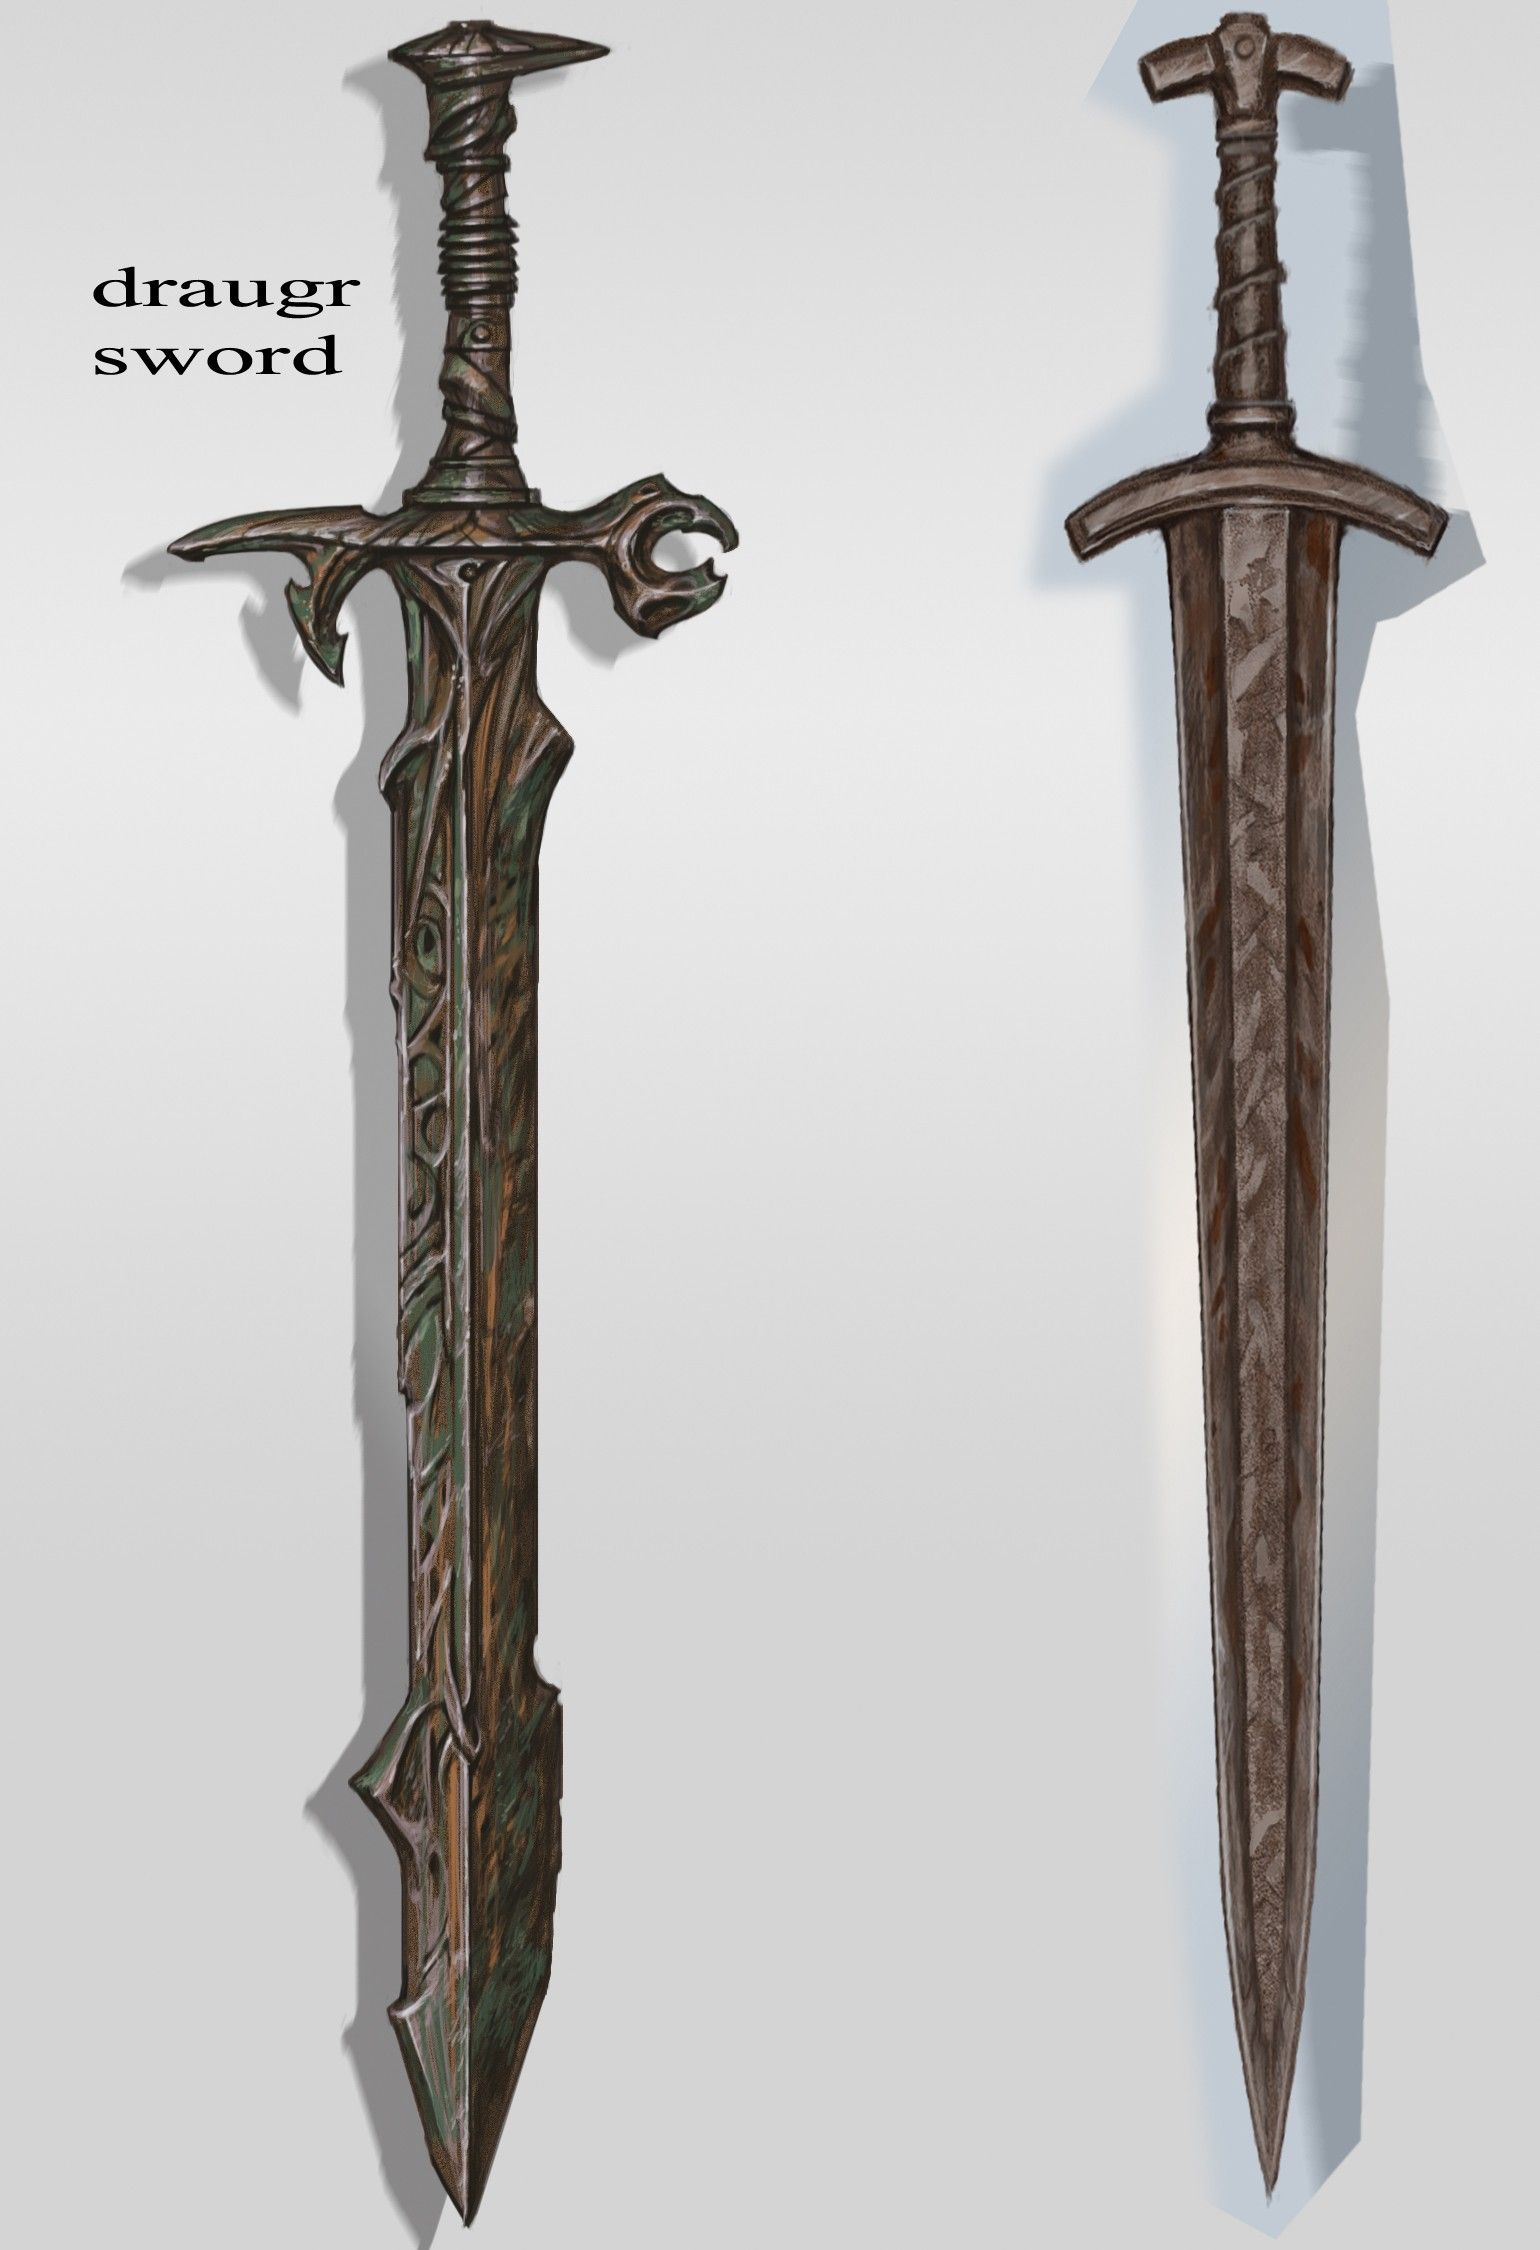 Skyrim 183 Draugr Sword By Adam Adamowicz The Elder